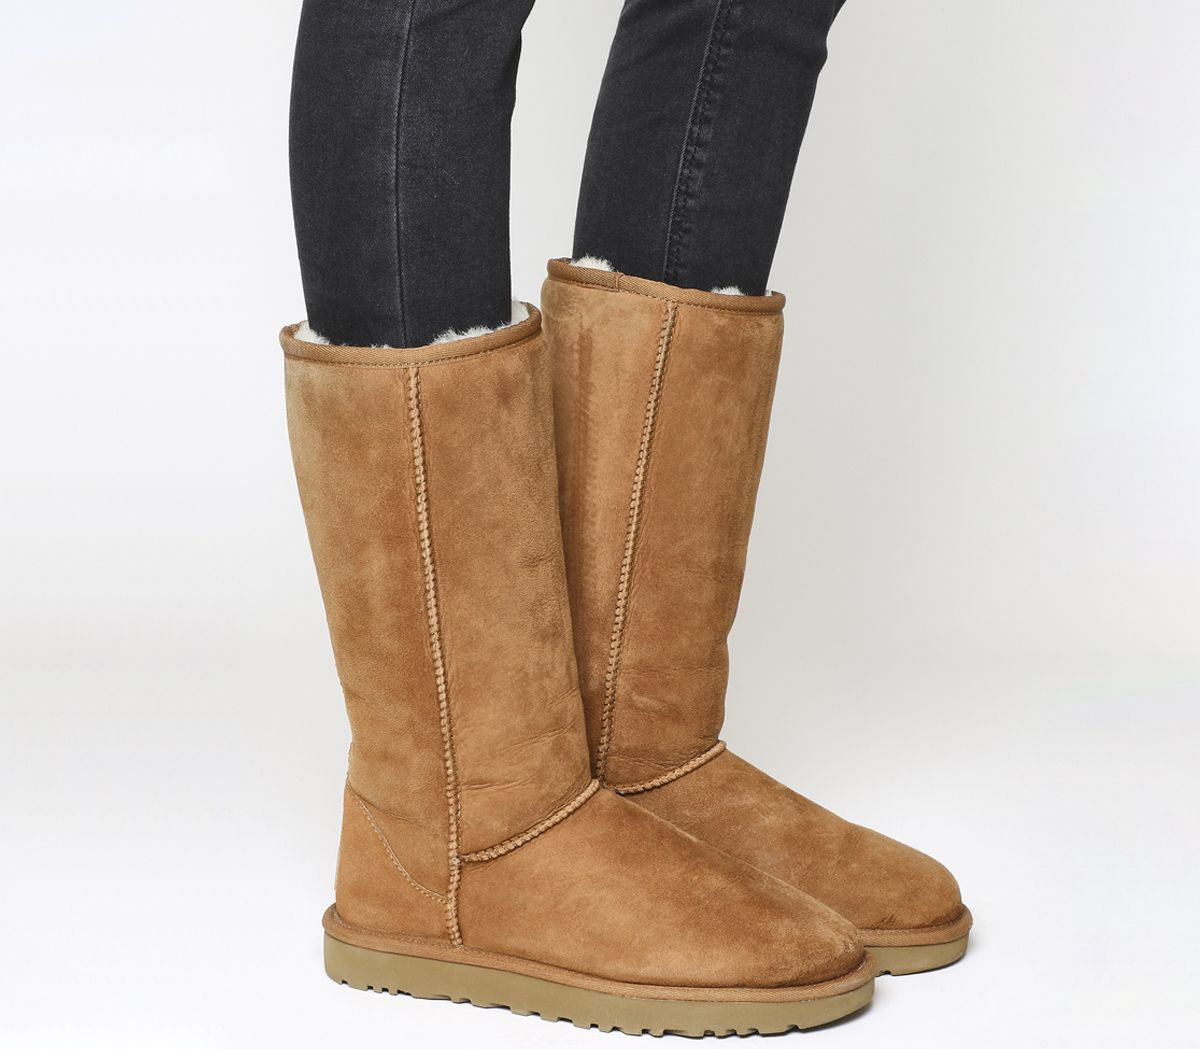 3ebd215543ac4 UGG Classic Tall II Boots Chestnut Suede - Knee Boots